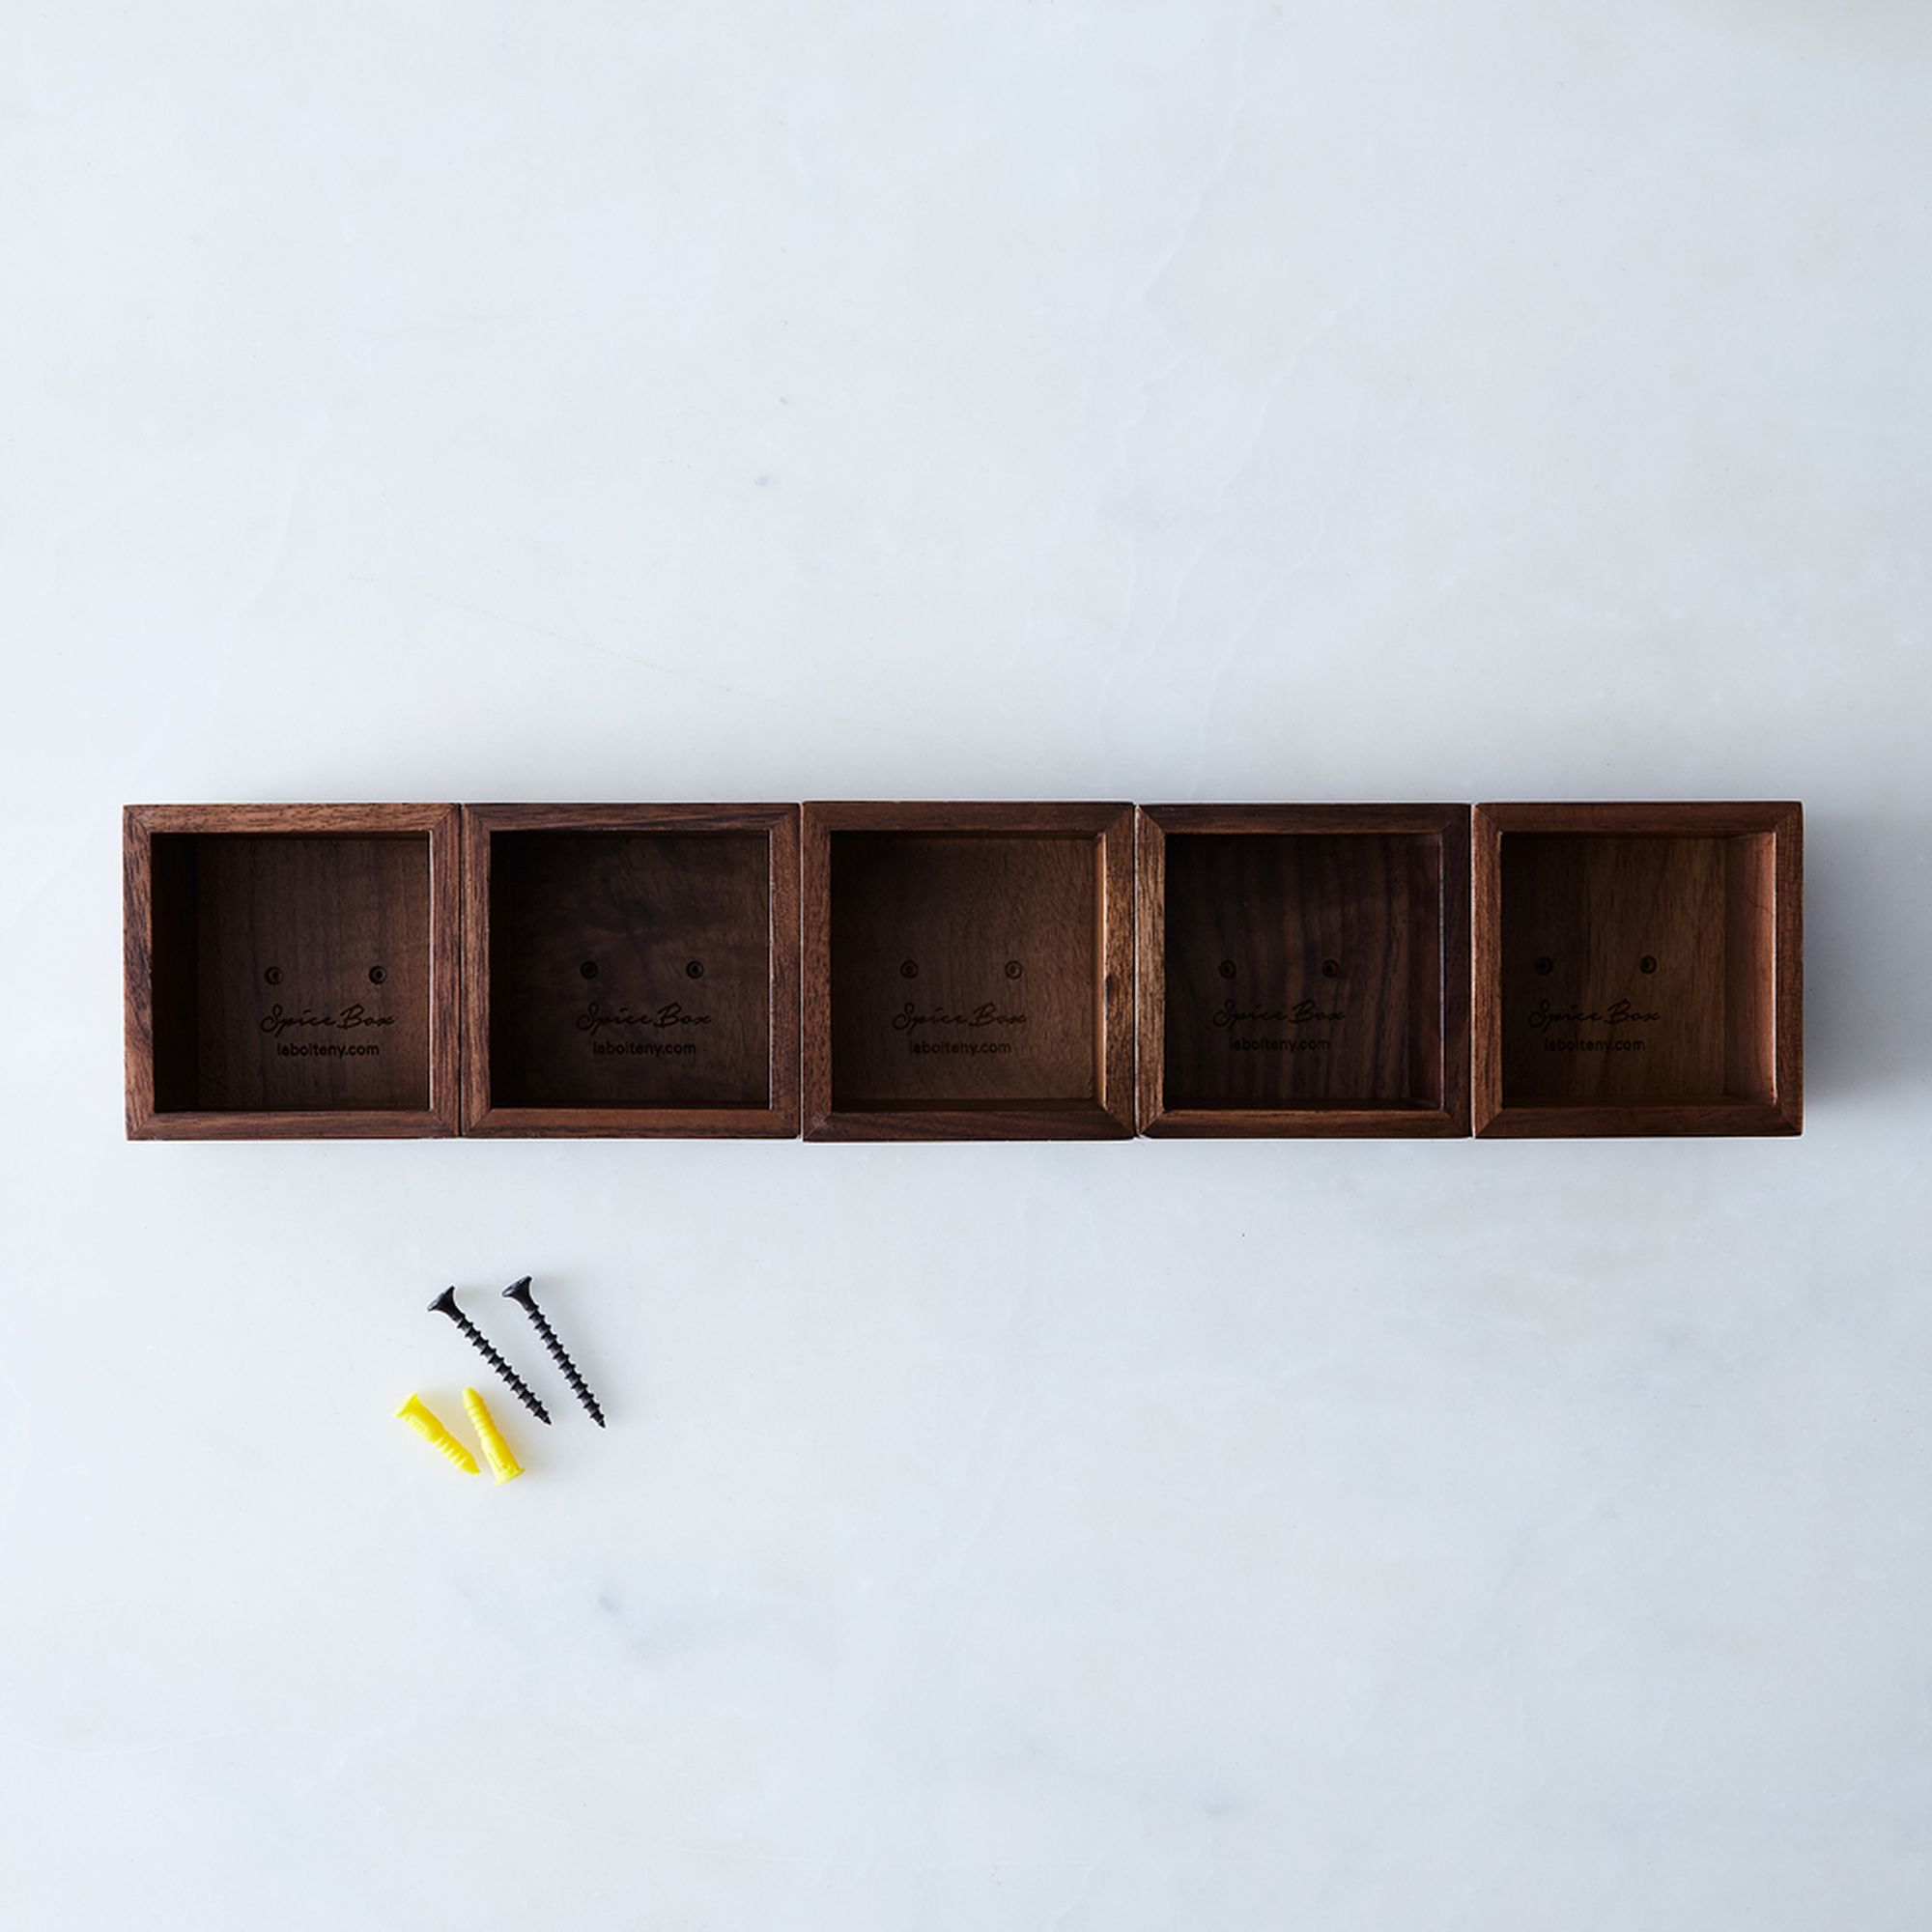 02b45f1c-8d02-4b0b-96cd-b1aa270c3d16--2017-0328_la-boite_modular-magnetic-walnut-spice-rack_no-spices_set-of-5_silo_rocky-luten_006.jpg